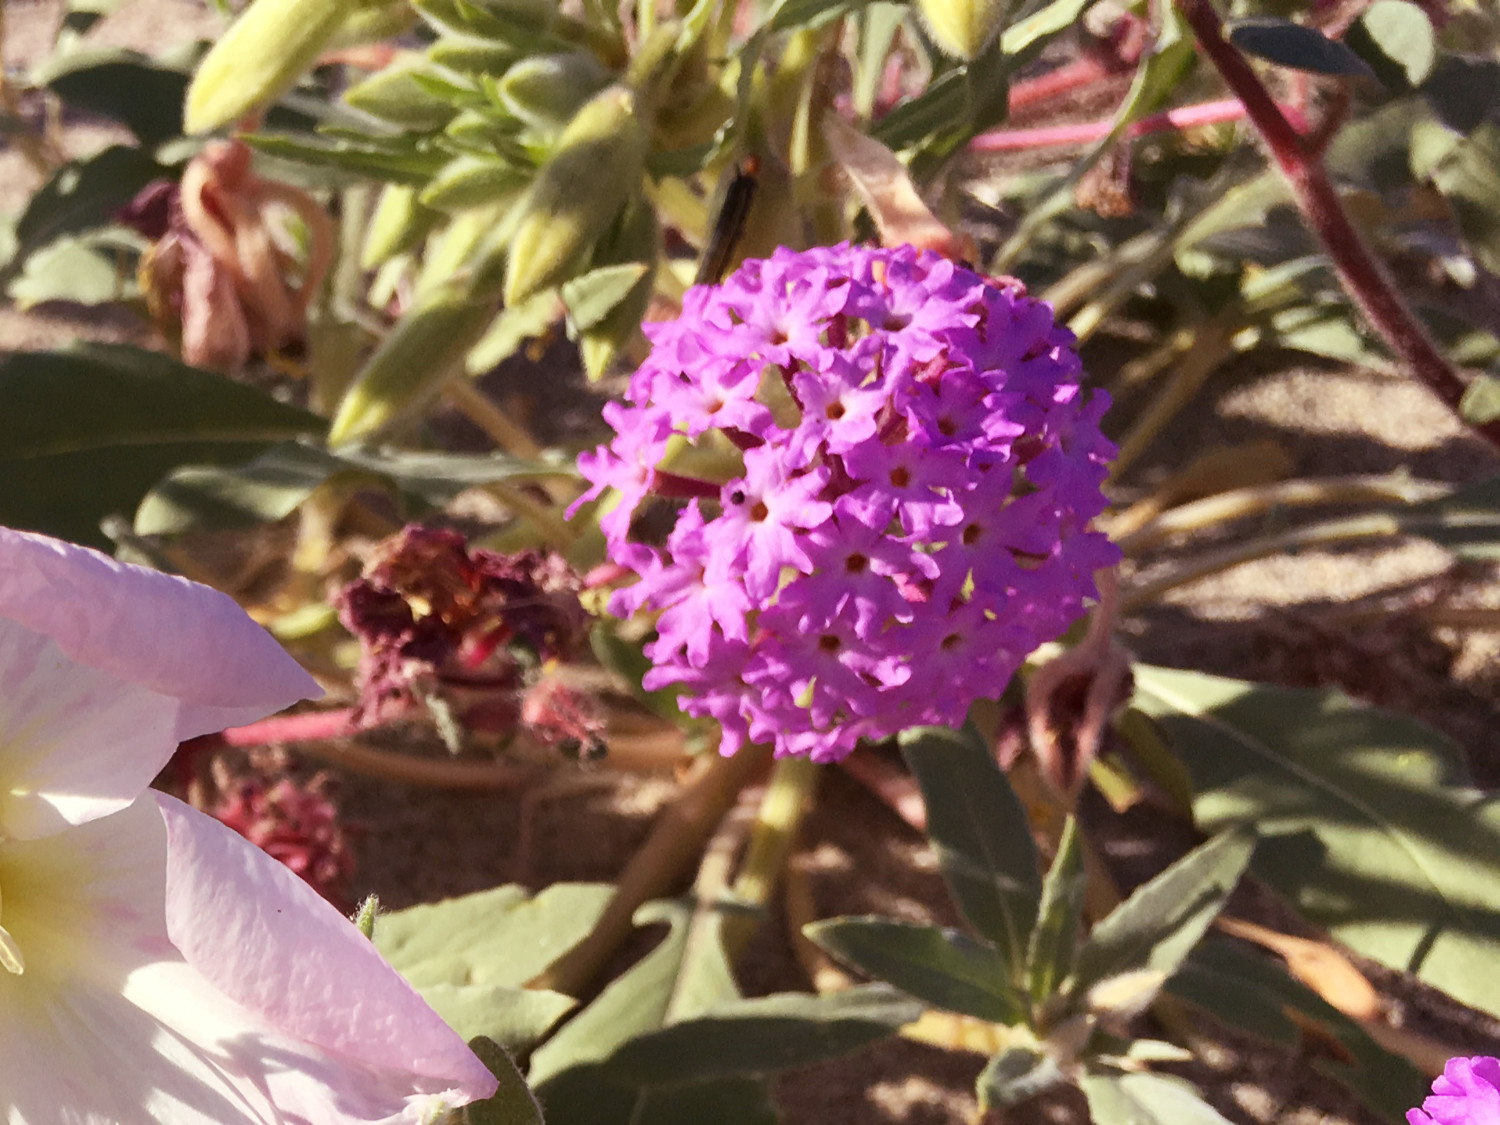 Sand Verbena (Abronia Villosa) - This purple flower grows low to the ground and gives the desert a vibrant purple carpet. Composed of tiny flowers on each head of blossoms, the verbena also has hairy leaves. You can typically find this blossom between February and May.